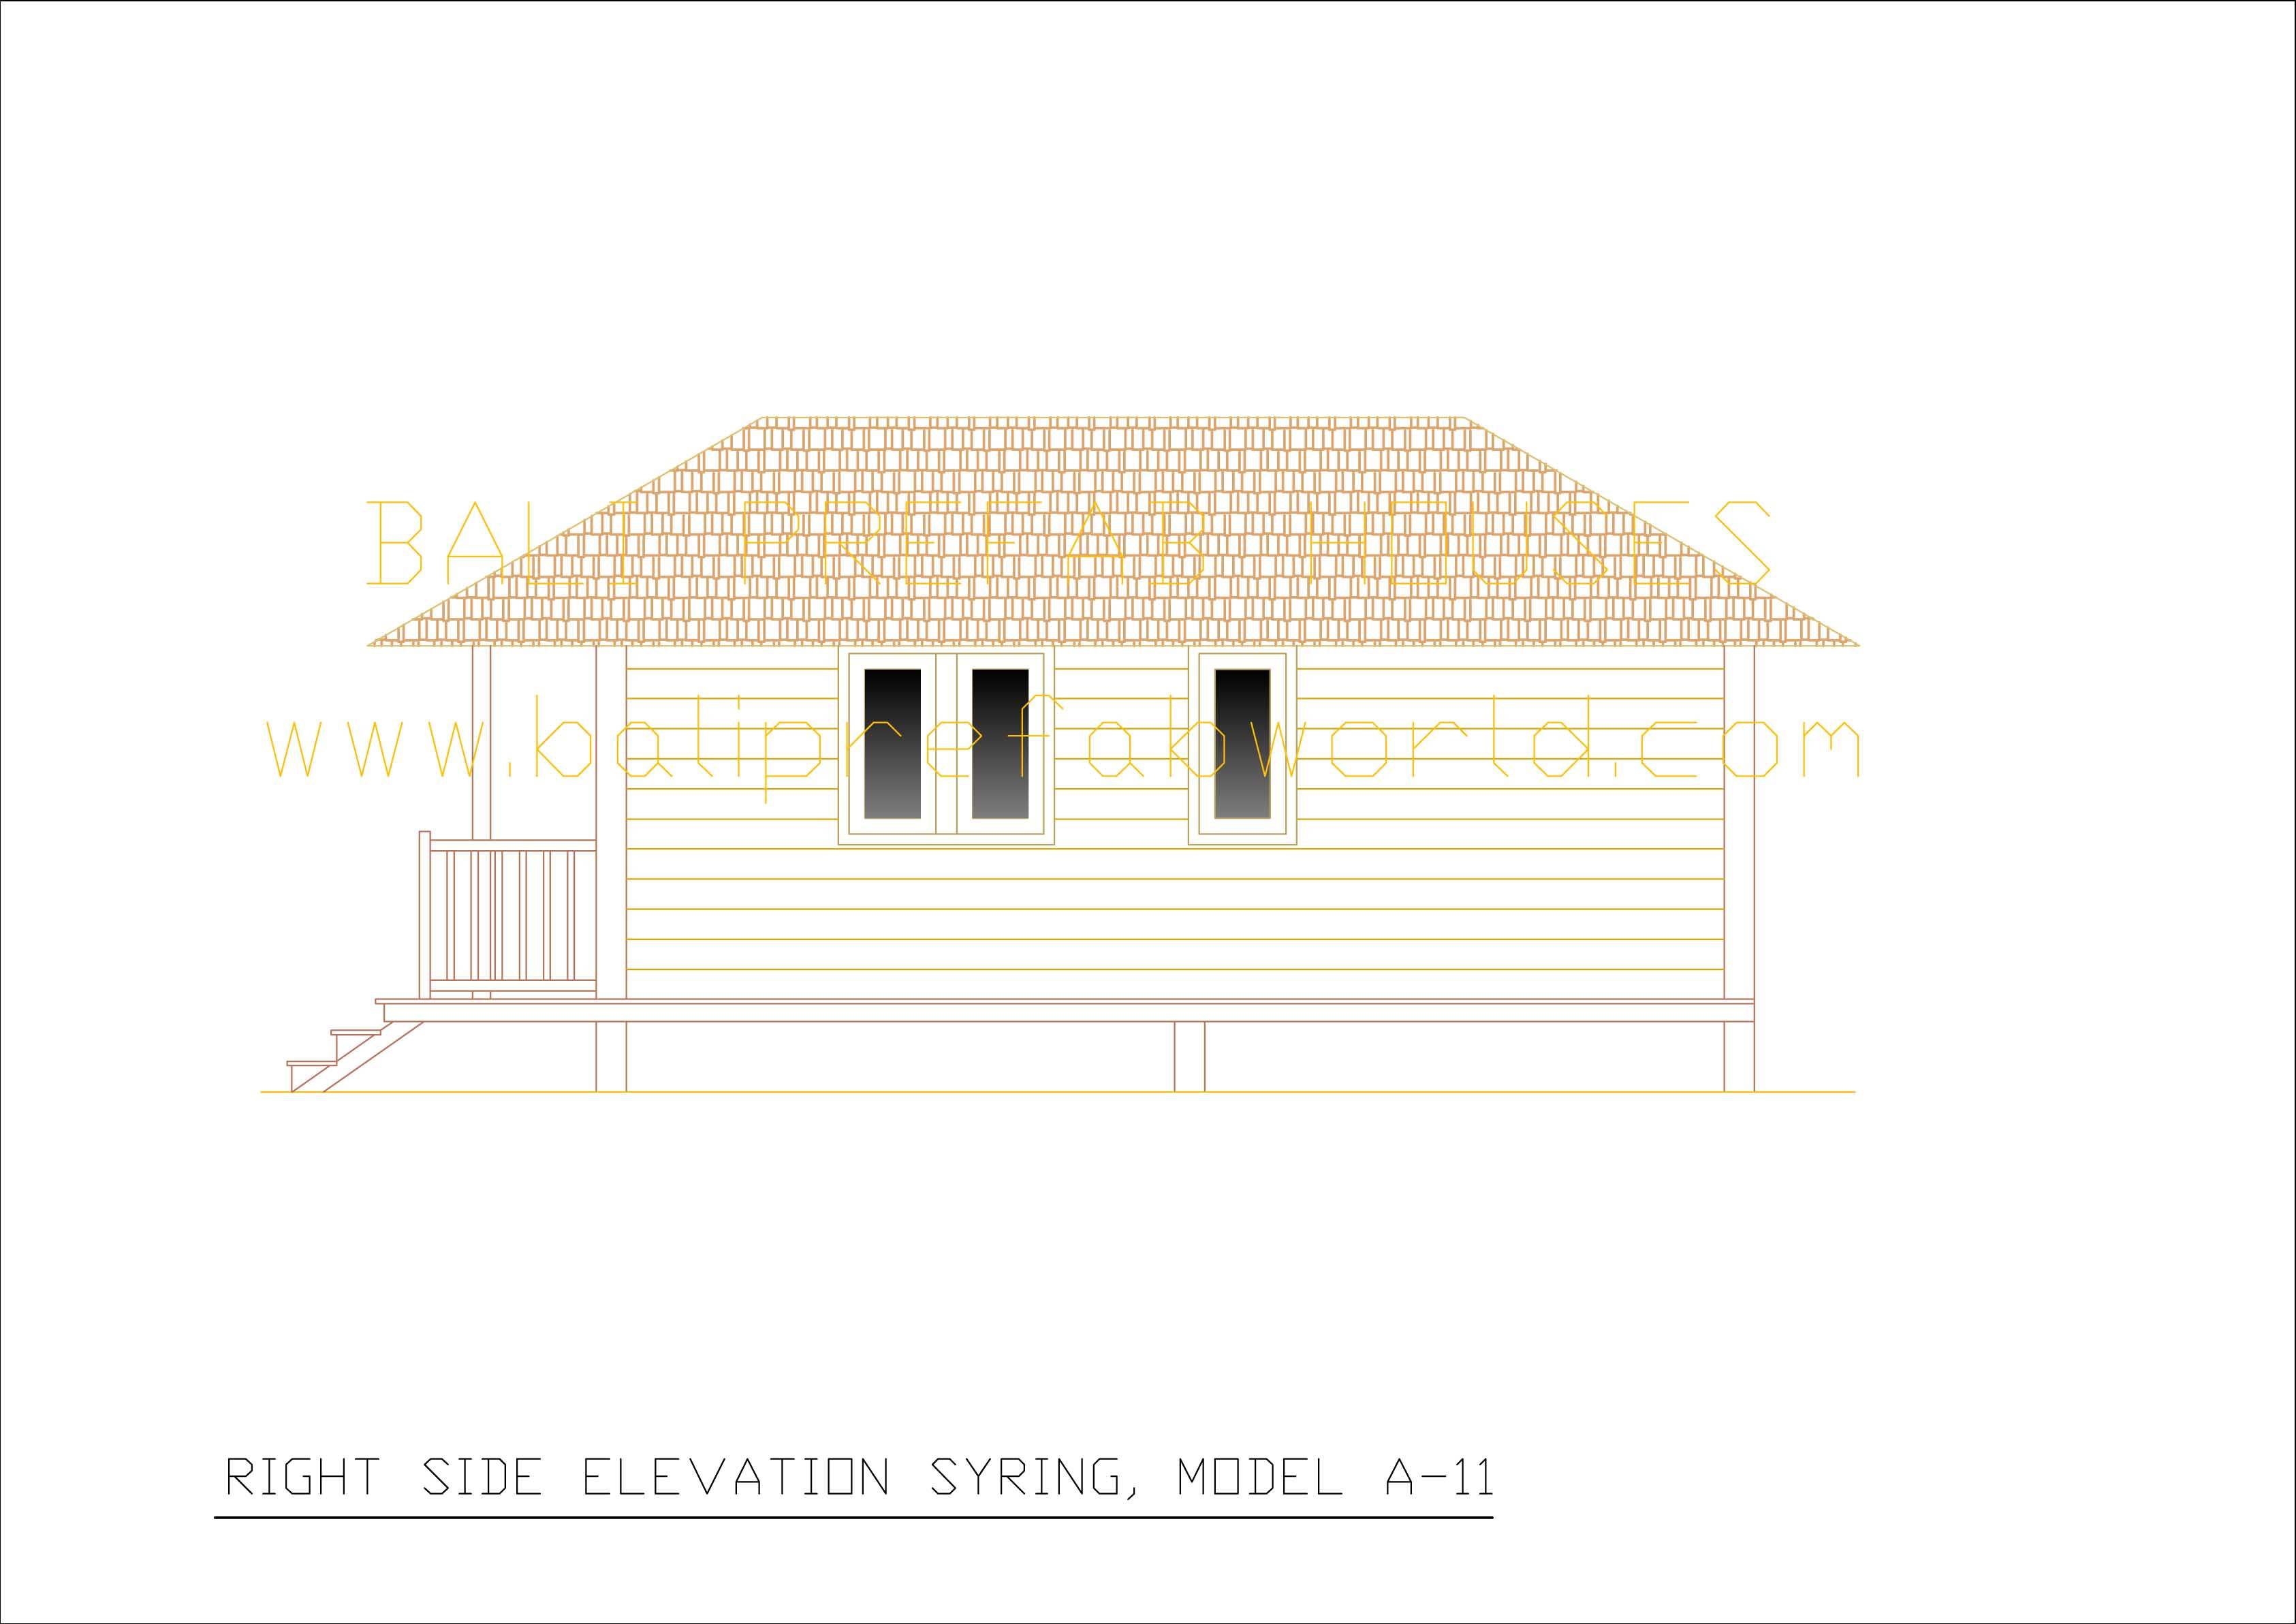 Syring right side elevation